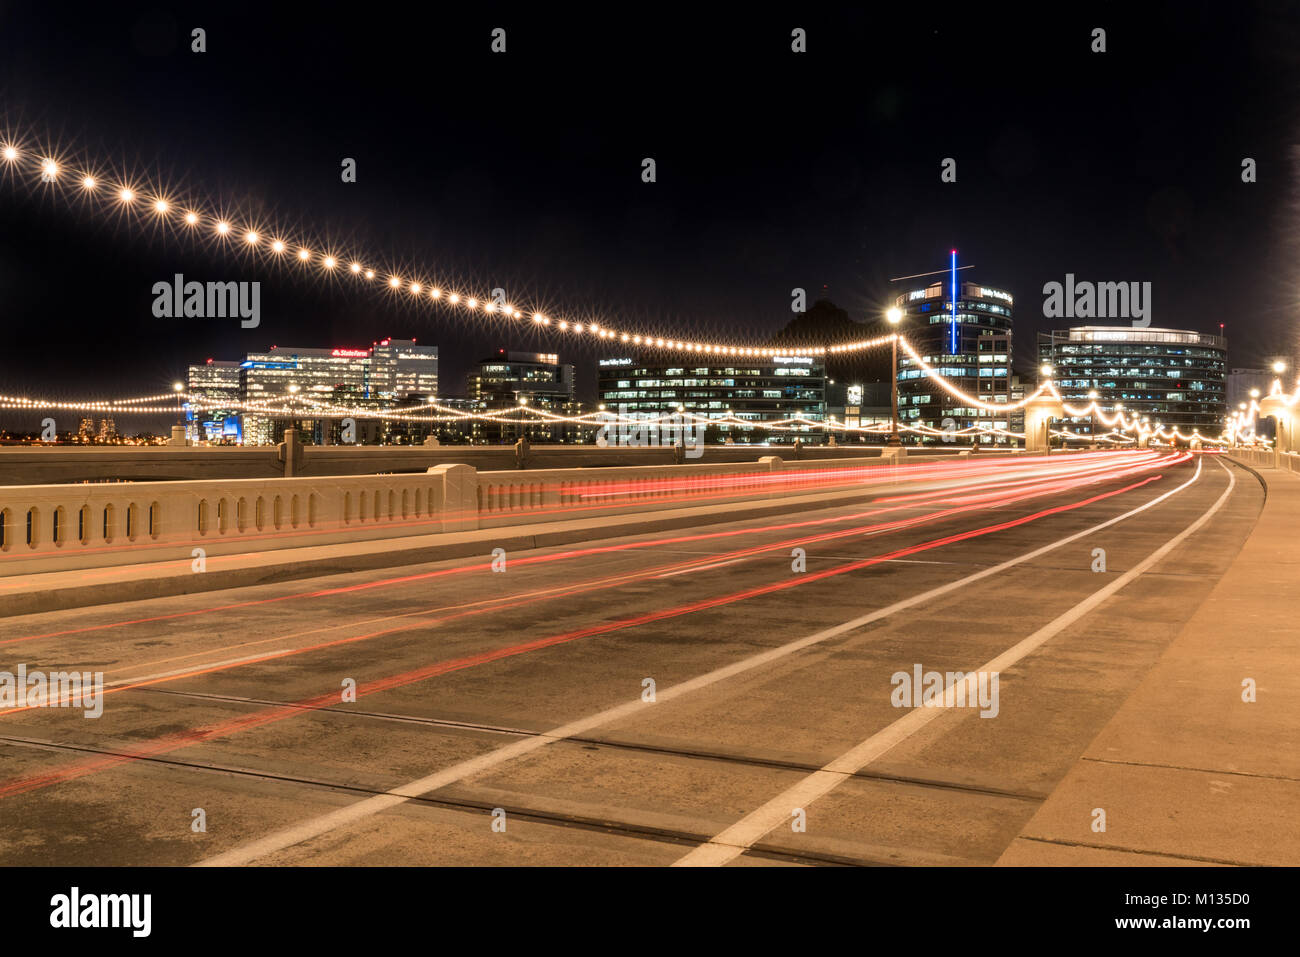 TEMPE, AZ - OCTOBER 25, 2017: The city skyline of Tempe, Arizona at night from the Mill Avenue Bridge across the - Stock Image